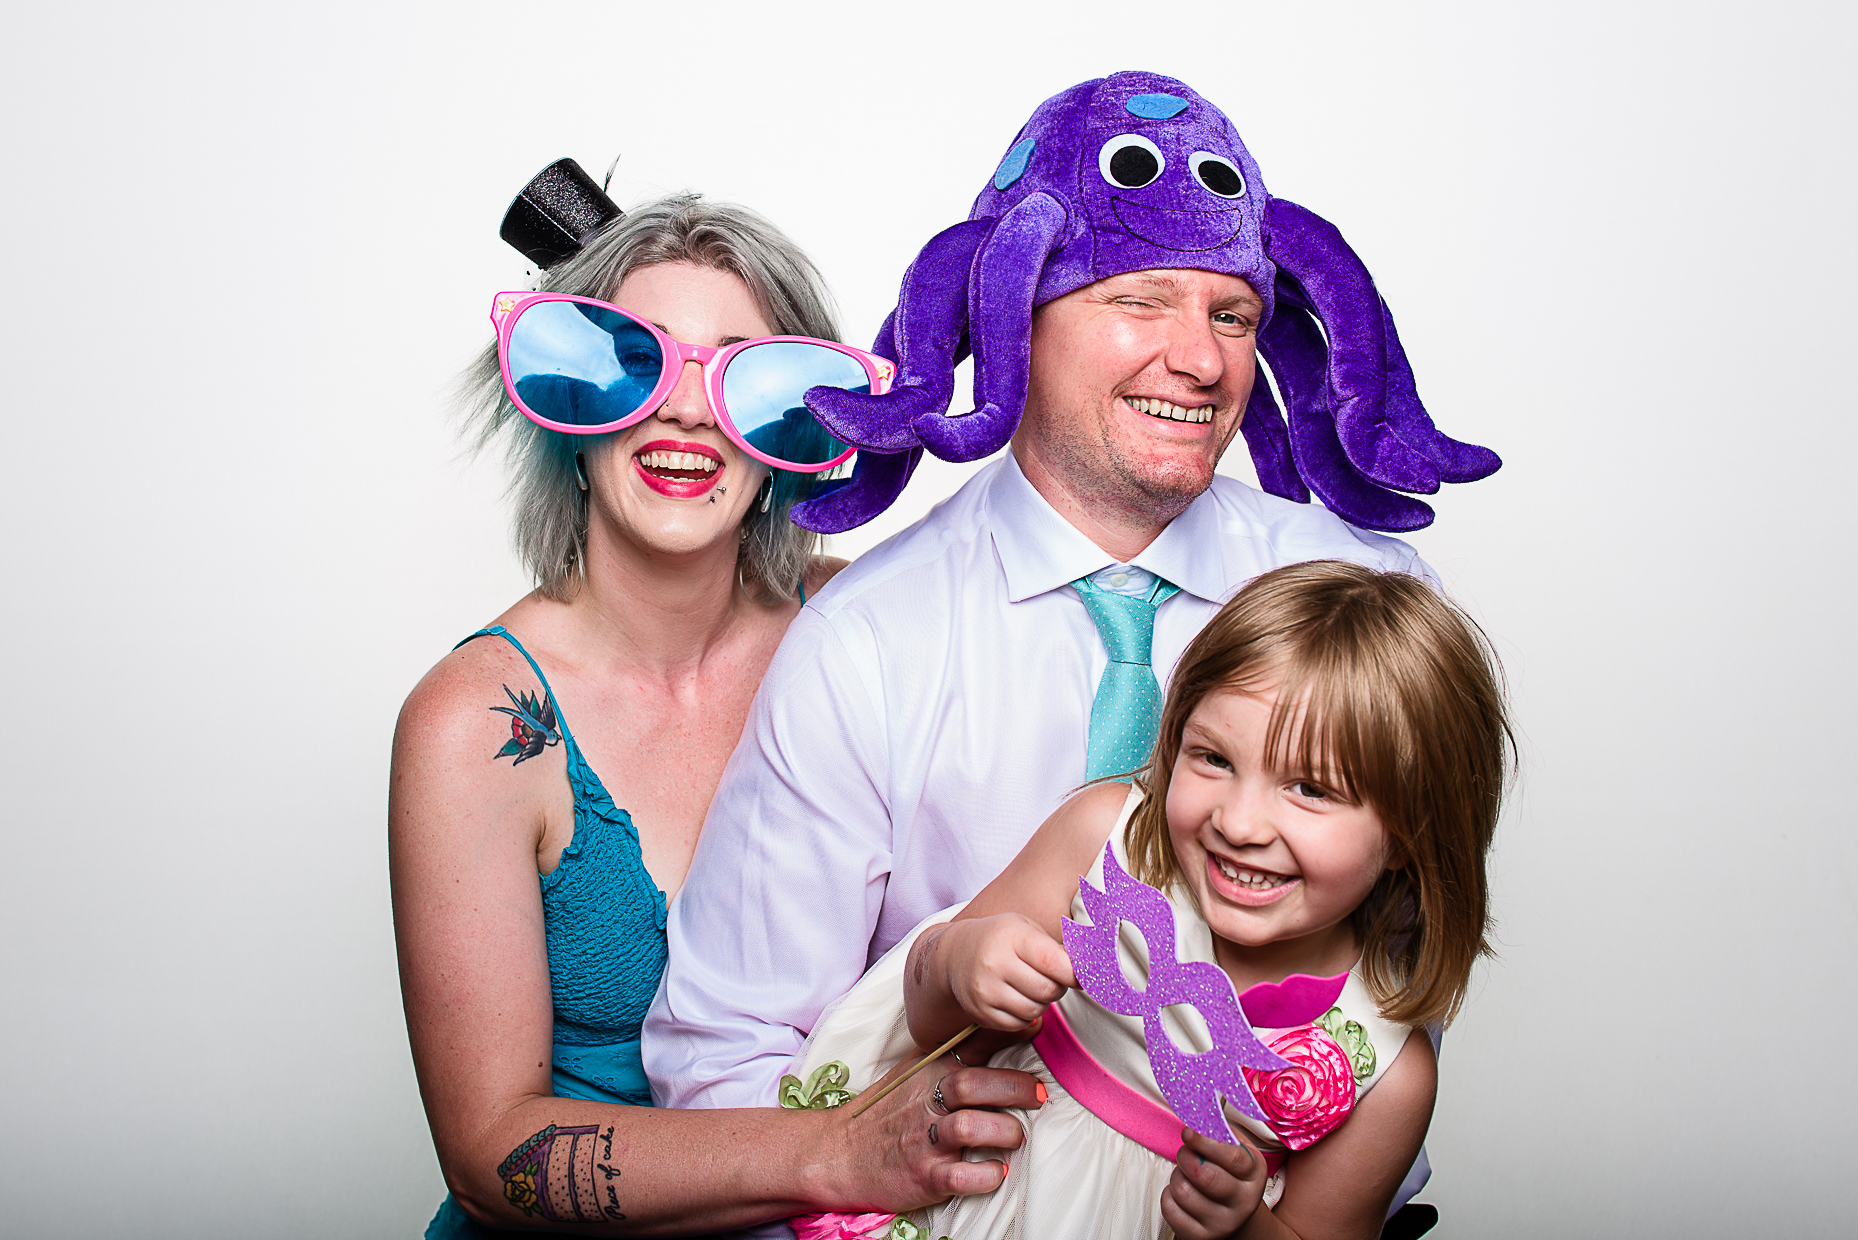 Austin-Wedding-Photographer-Photobooth-Family-Fun-Glasses-Mask